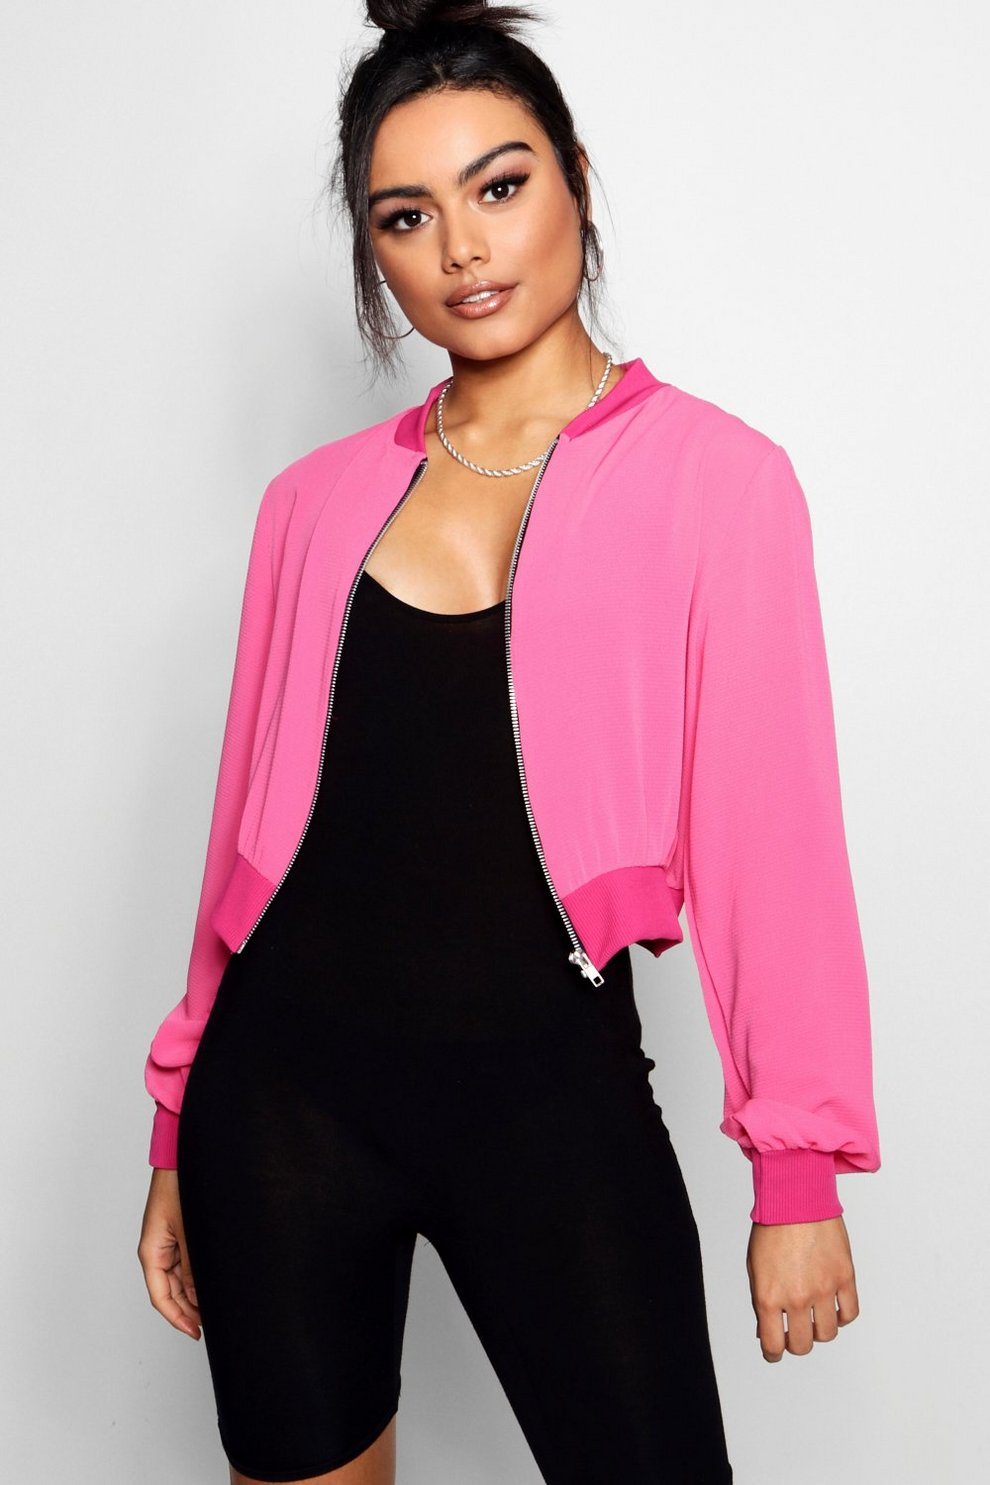 Boohoo Woven Bomber Outlet Newest Buy Authentic Online Lowest Price For Sale Original For Sale 6ugpEtG8XS